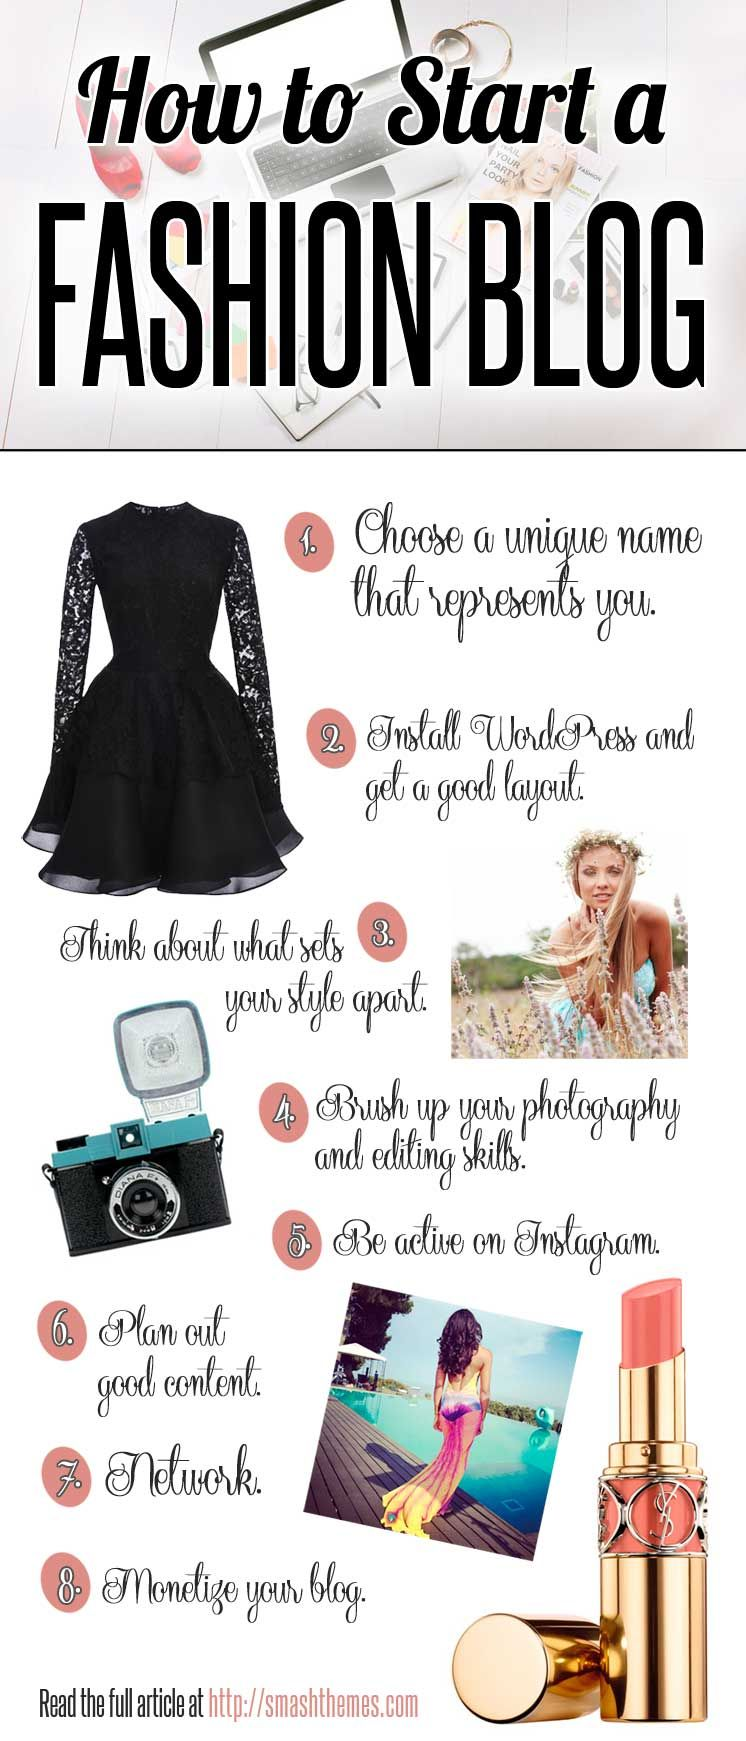 How To Start A Fashion Blog Infographic. 10 Tips About How